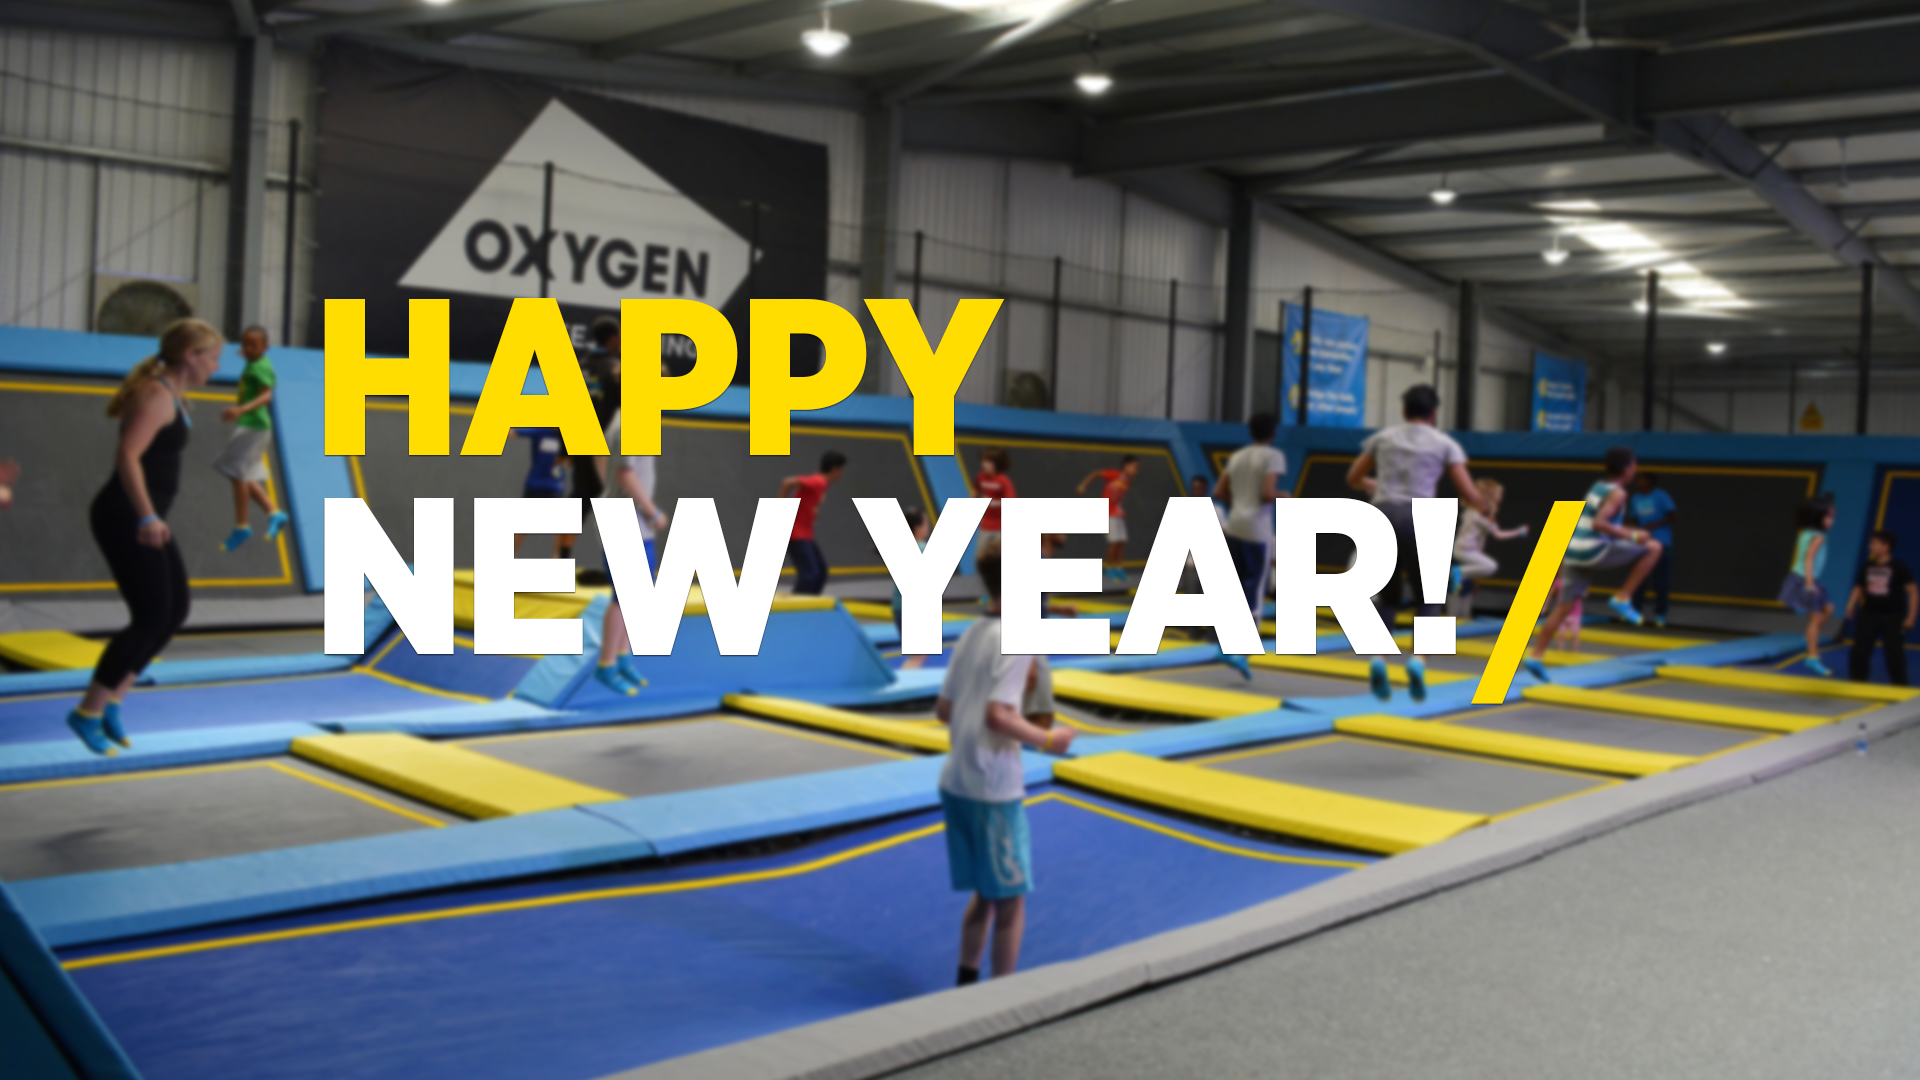 happy new year from oxygen oxygen freejumping. Black Bedroom Furniture Sets. Home Design Ideas